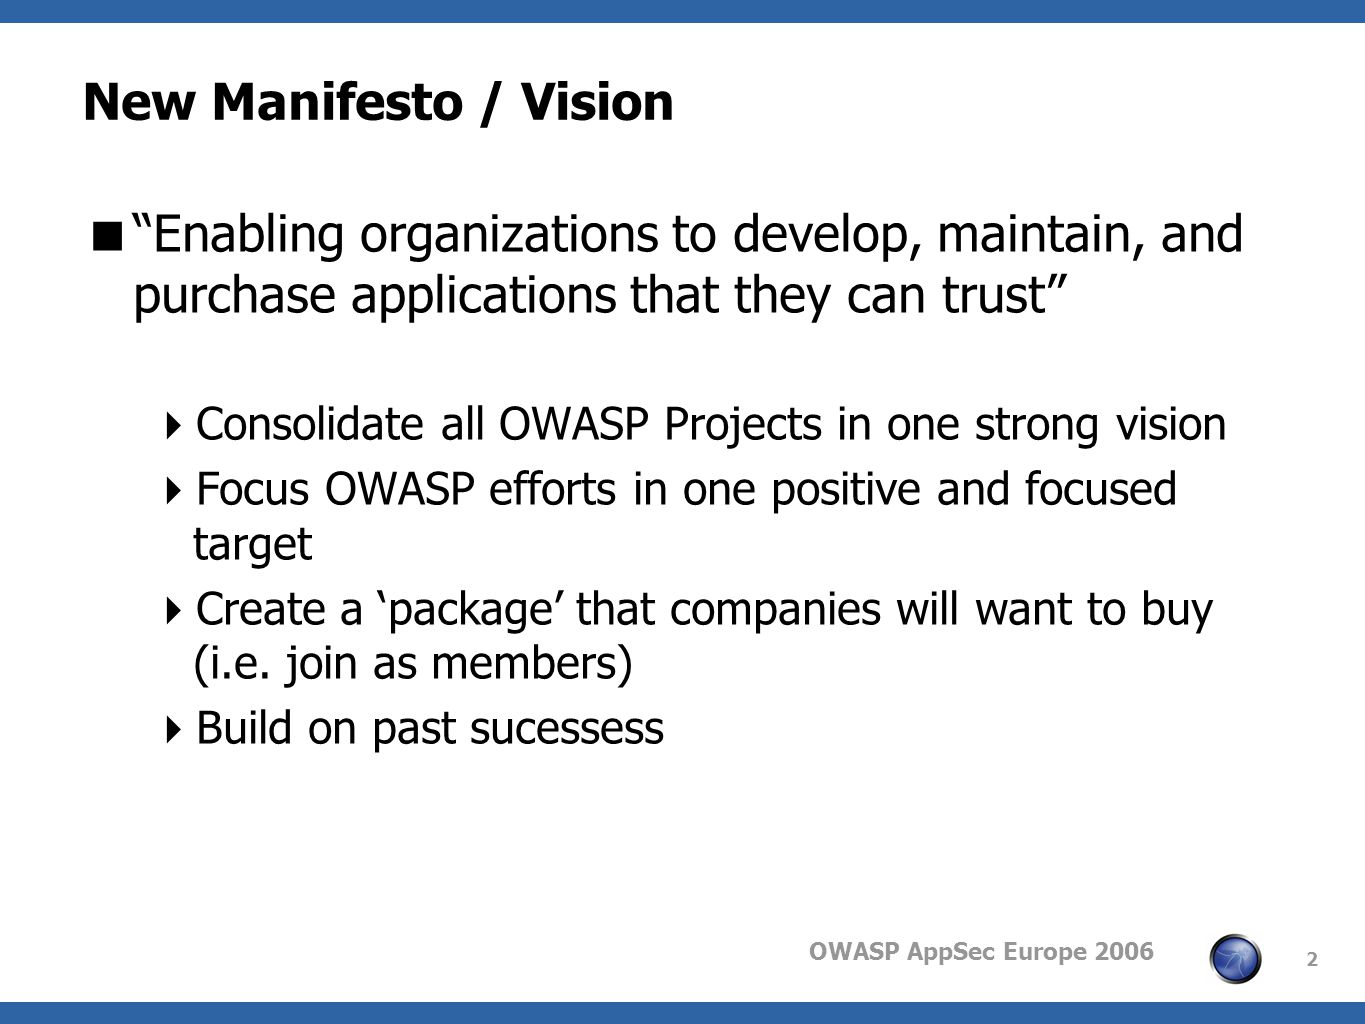 OWASP AppSec Europe 2006 2 New Manifesto / Vision Enabling organizations to develop, maintain, and purchase applications that they can trust Consolidate all OWASP Projects in one strong vision Focus OWASP efforts in one positive and focused target Create a package that companies will want to buy (i.e.